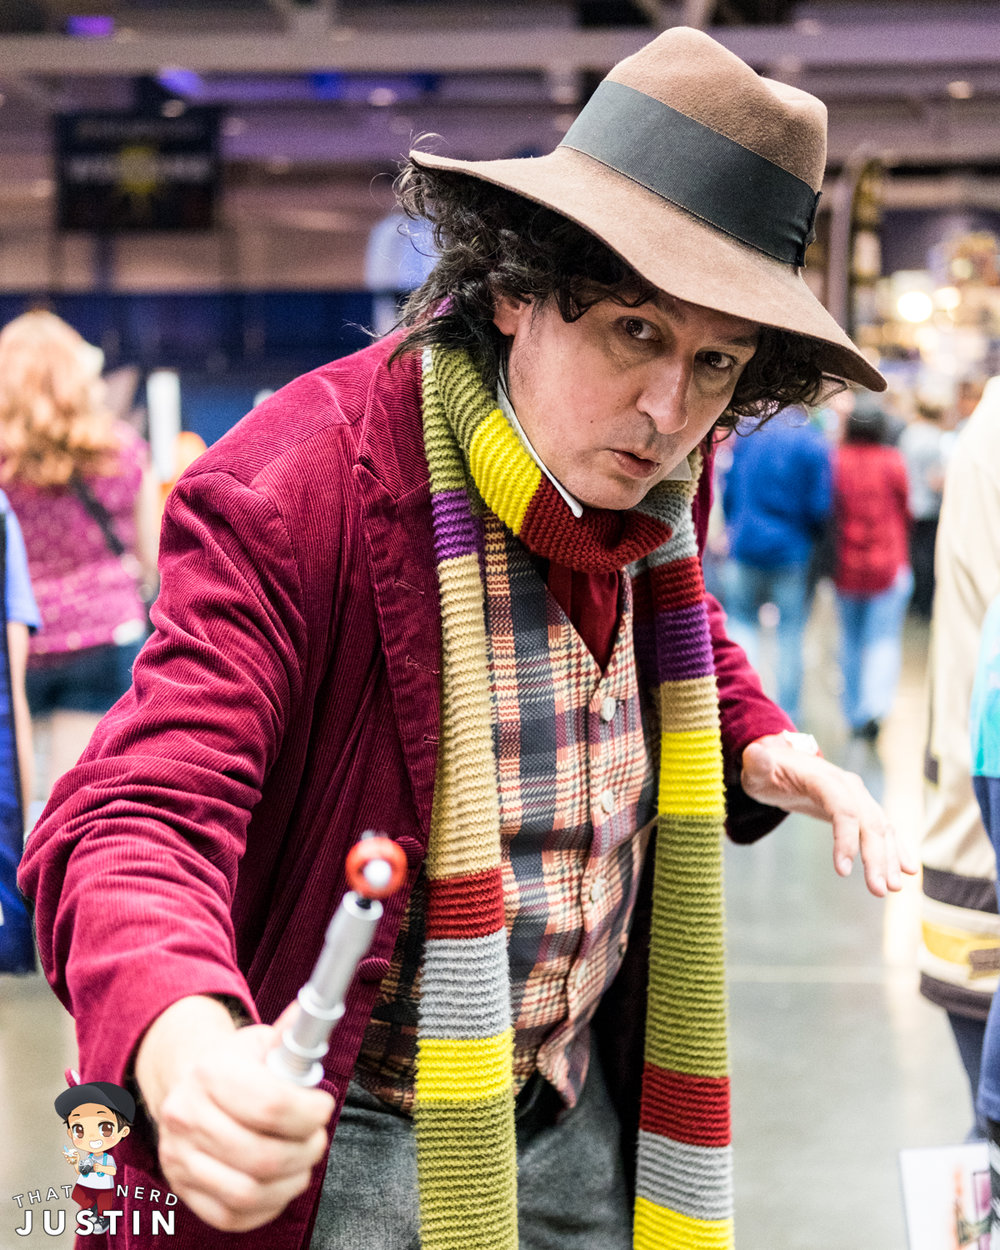 Larry as the Fourth Doctor